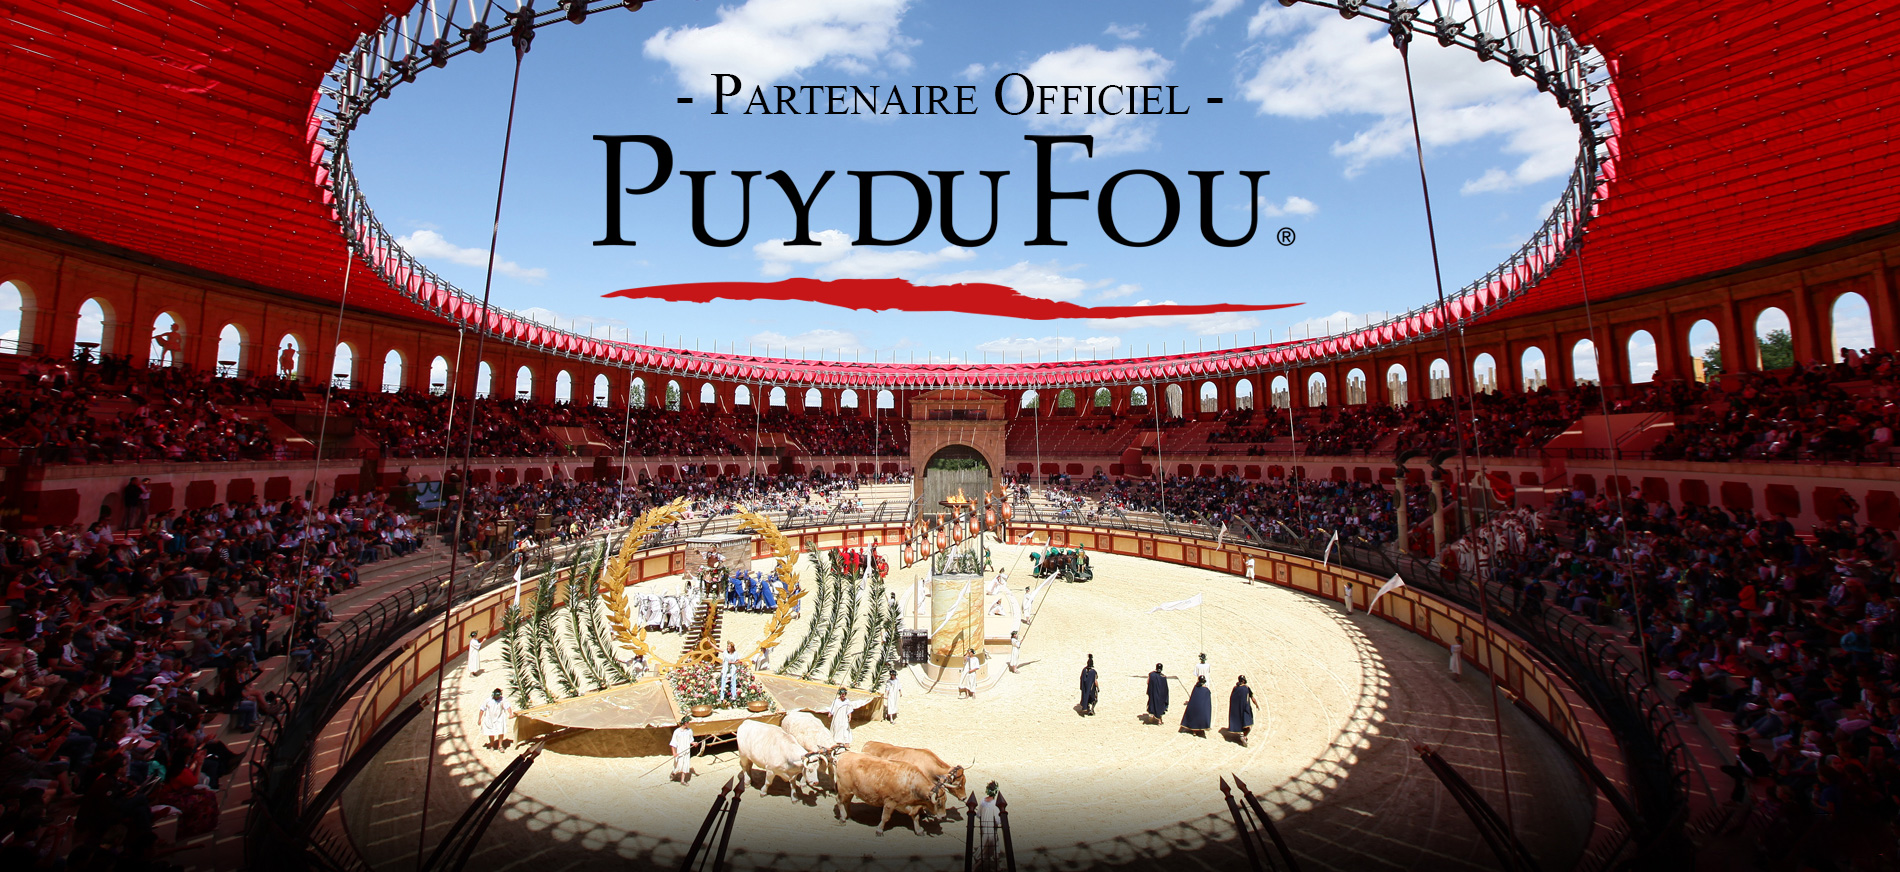 sejour puy du fou ch teau du boisniard r servation en ligne de s jours au puy du fou. Black Bedroom Furniture Sets. Home Design Ideas